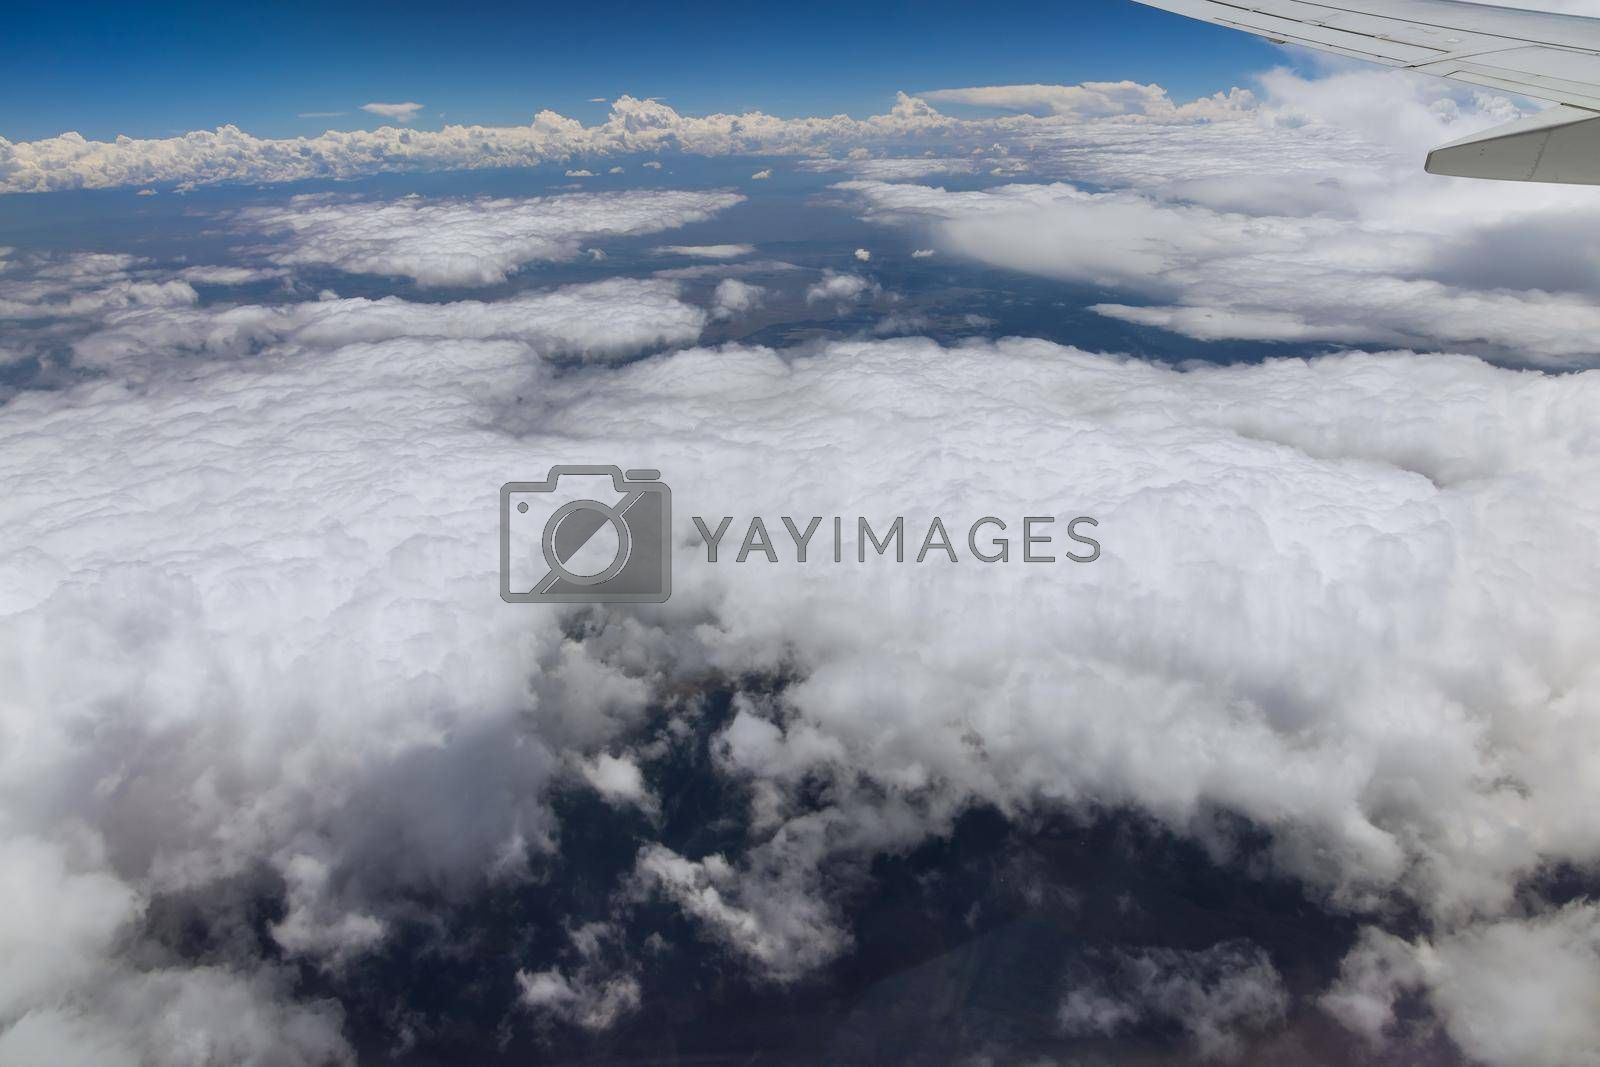 Royalty free image of Wing aircraft in altitude during flying above the clouds by ungvar